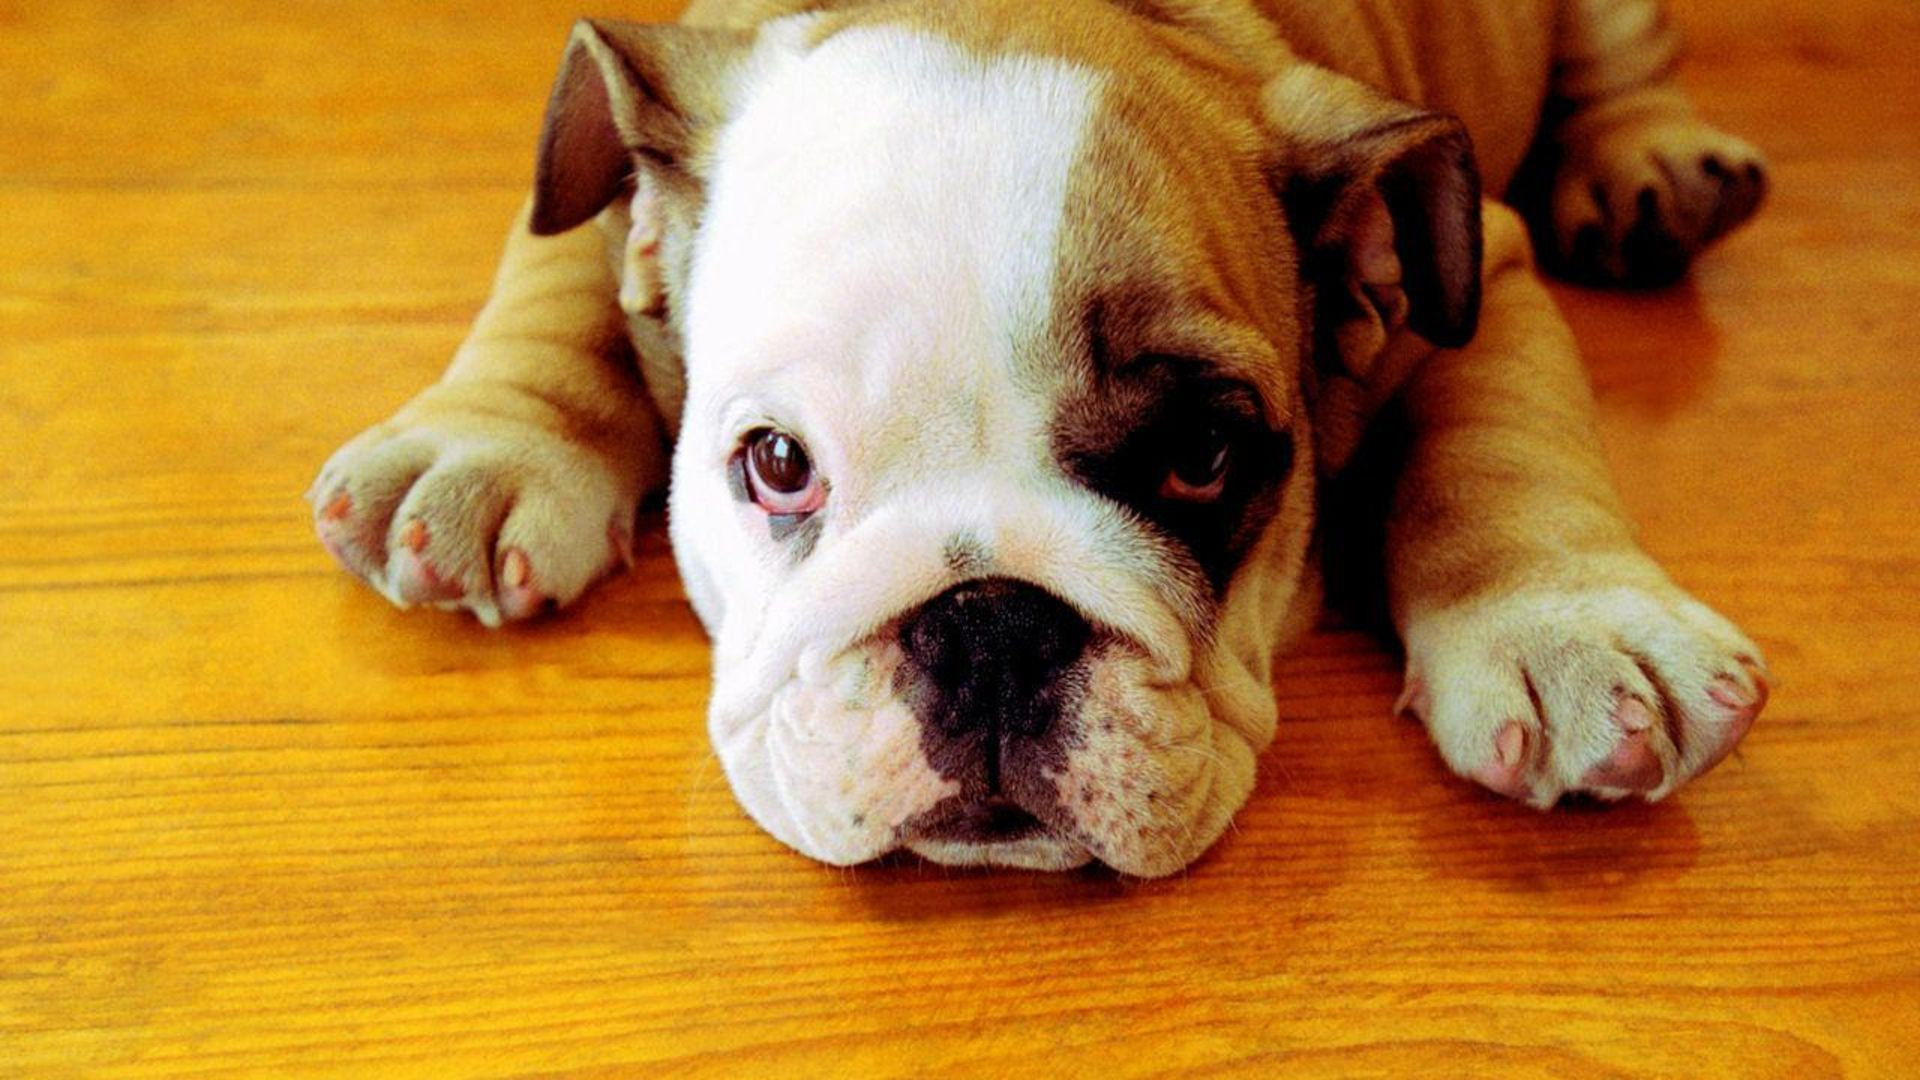 Bulldog Puppy Wallpaper Bulldog Puppies Bulldog Wallpaper